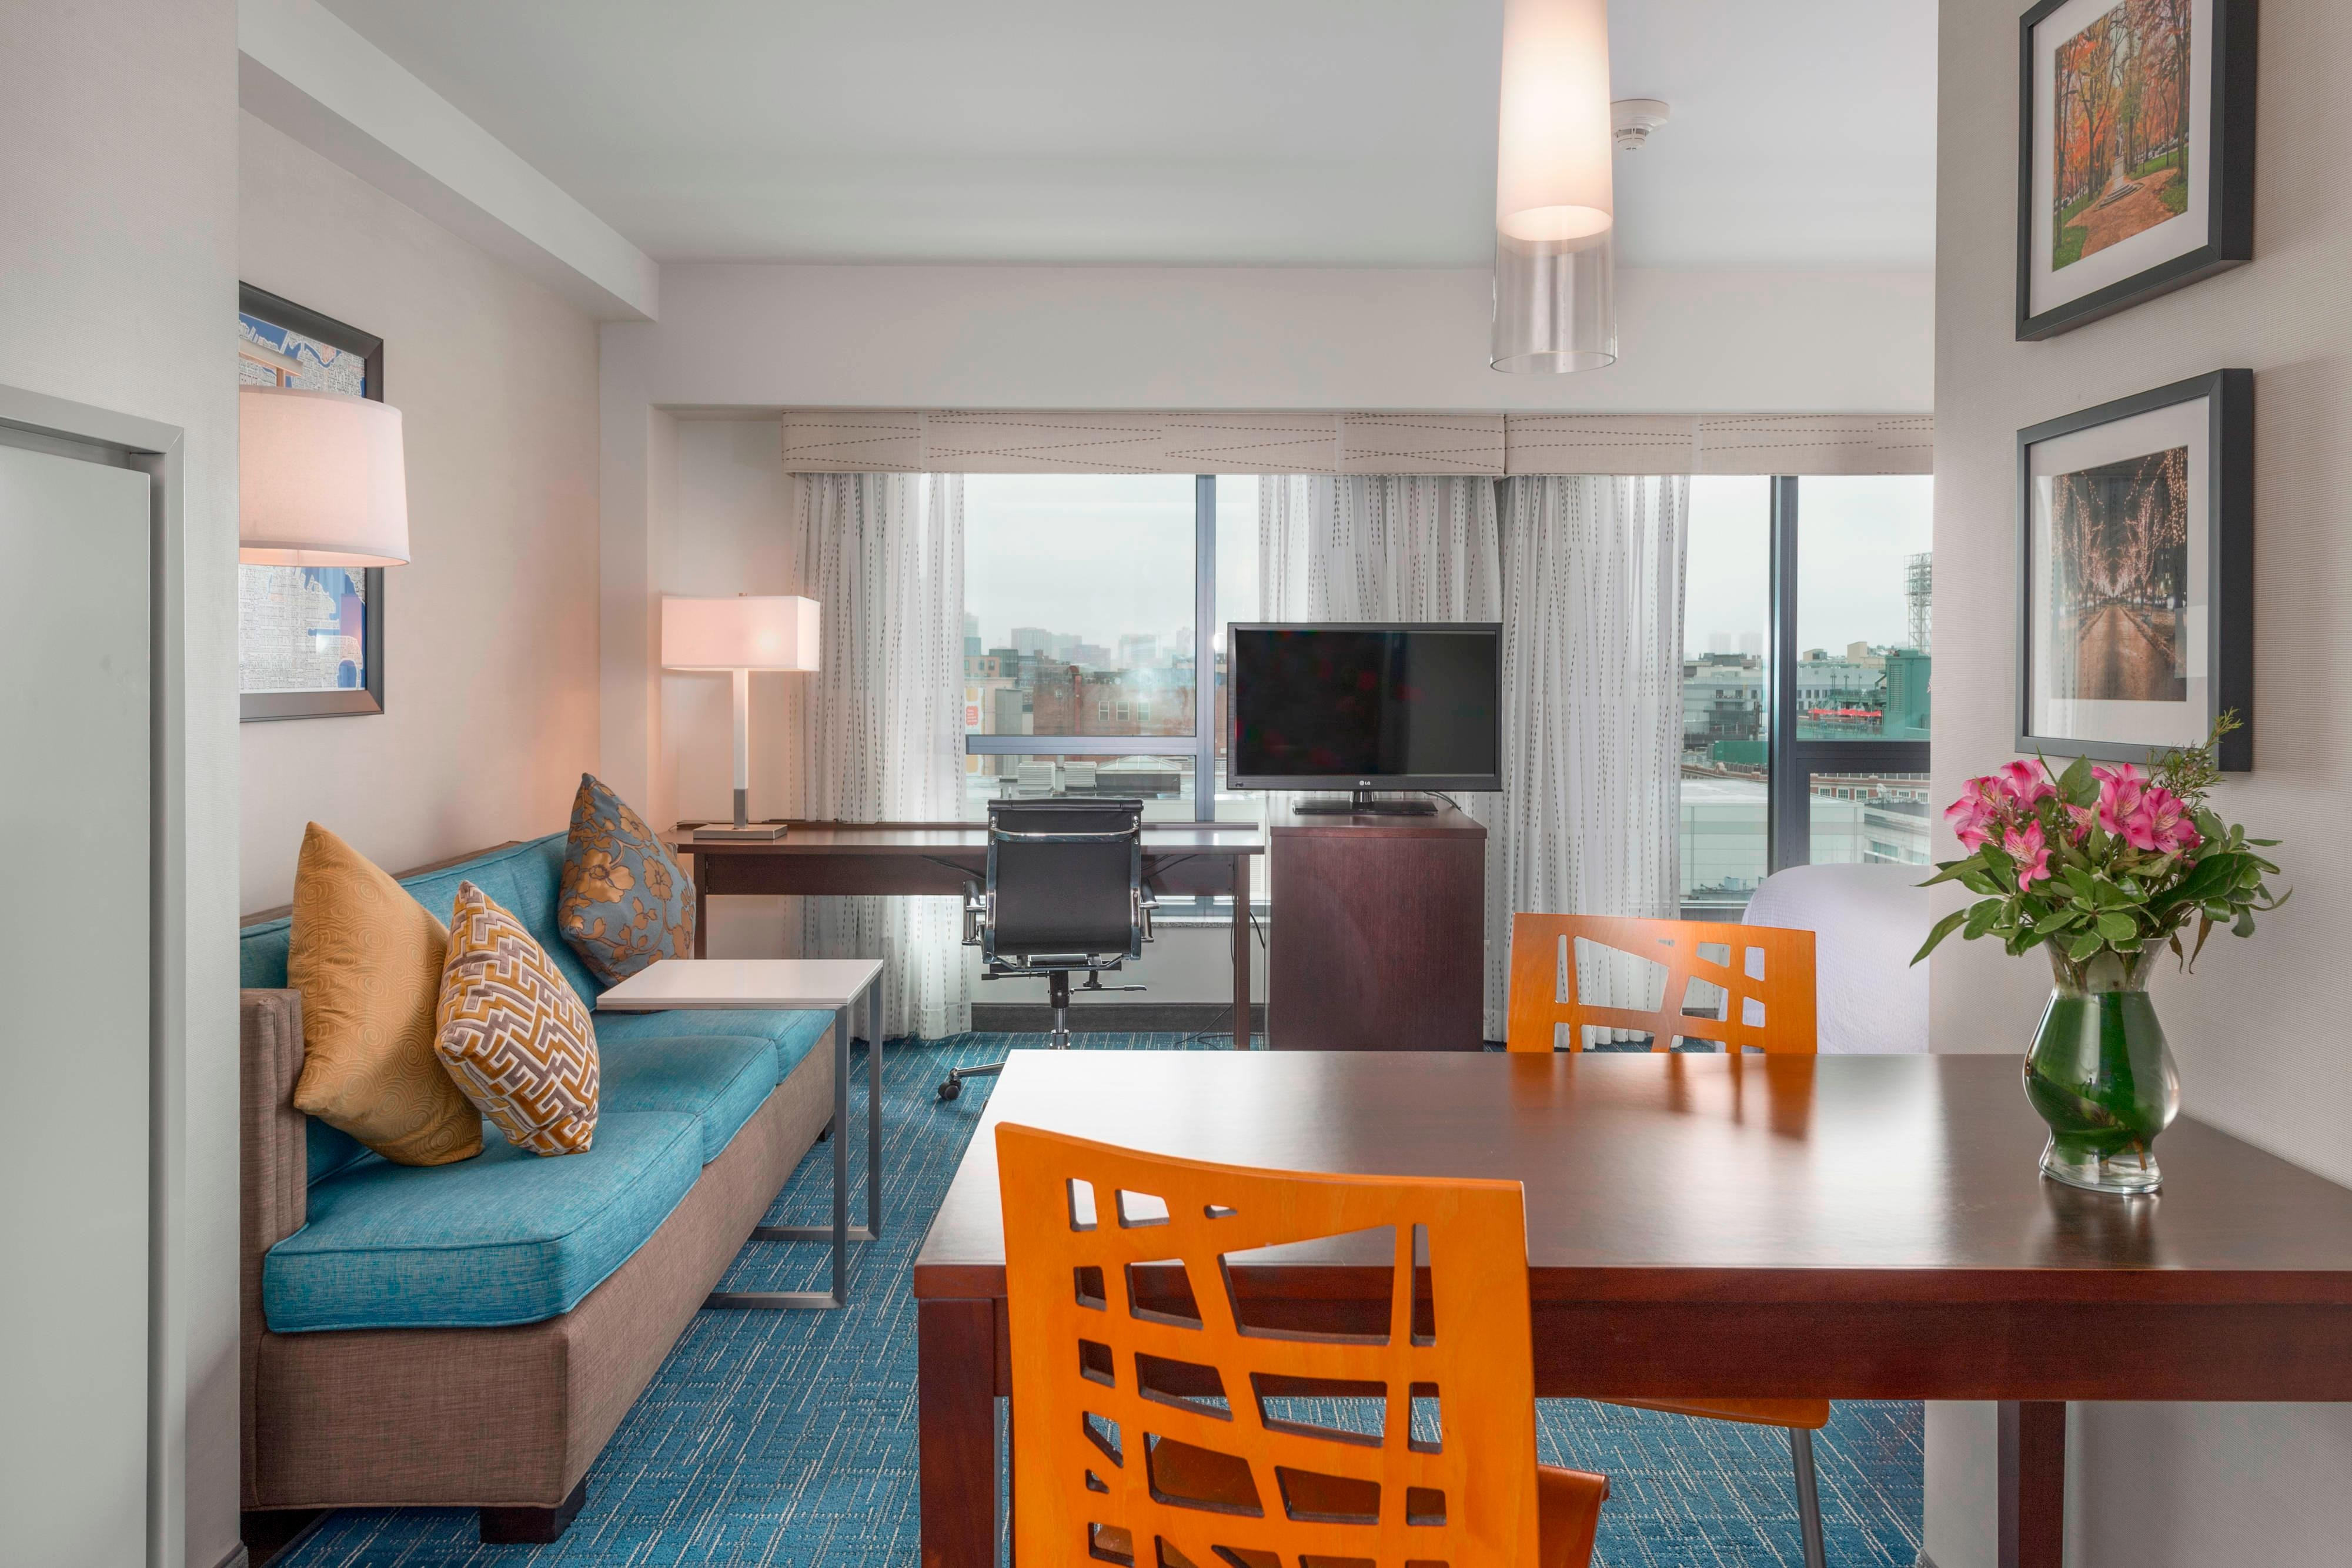 casino new modern room french in orleans prices hotel guest suites hotels within on queen bedroom quarter deals